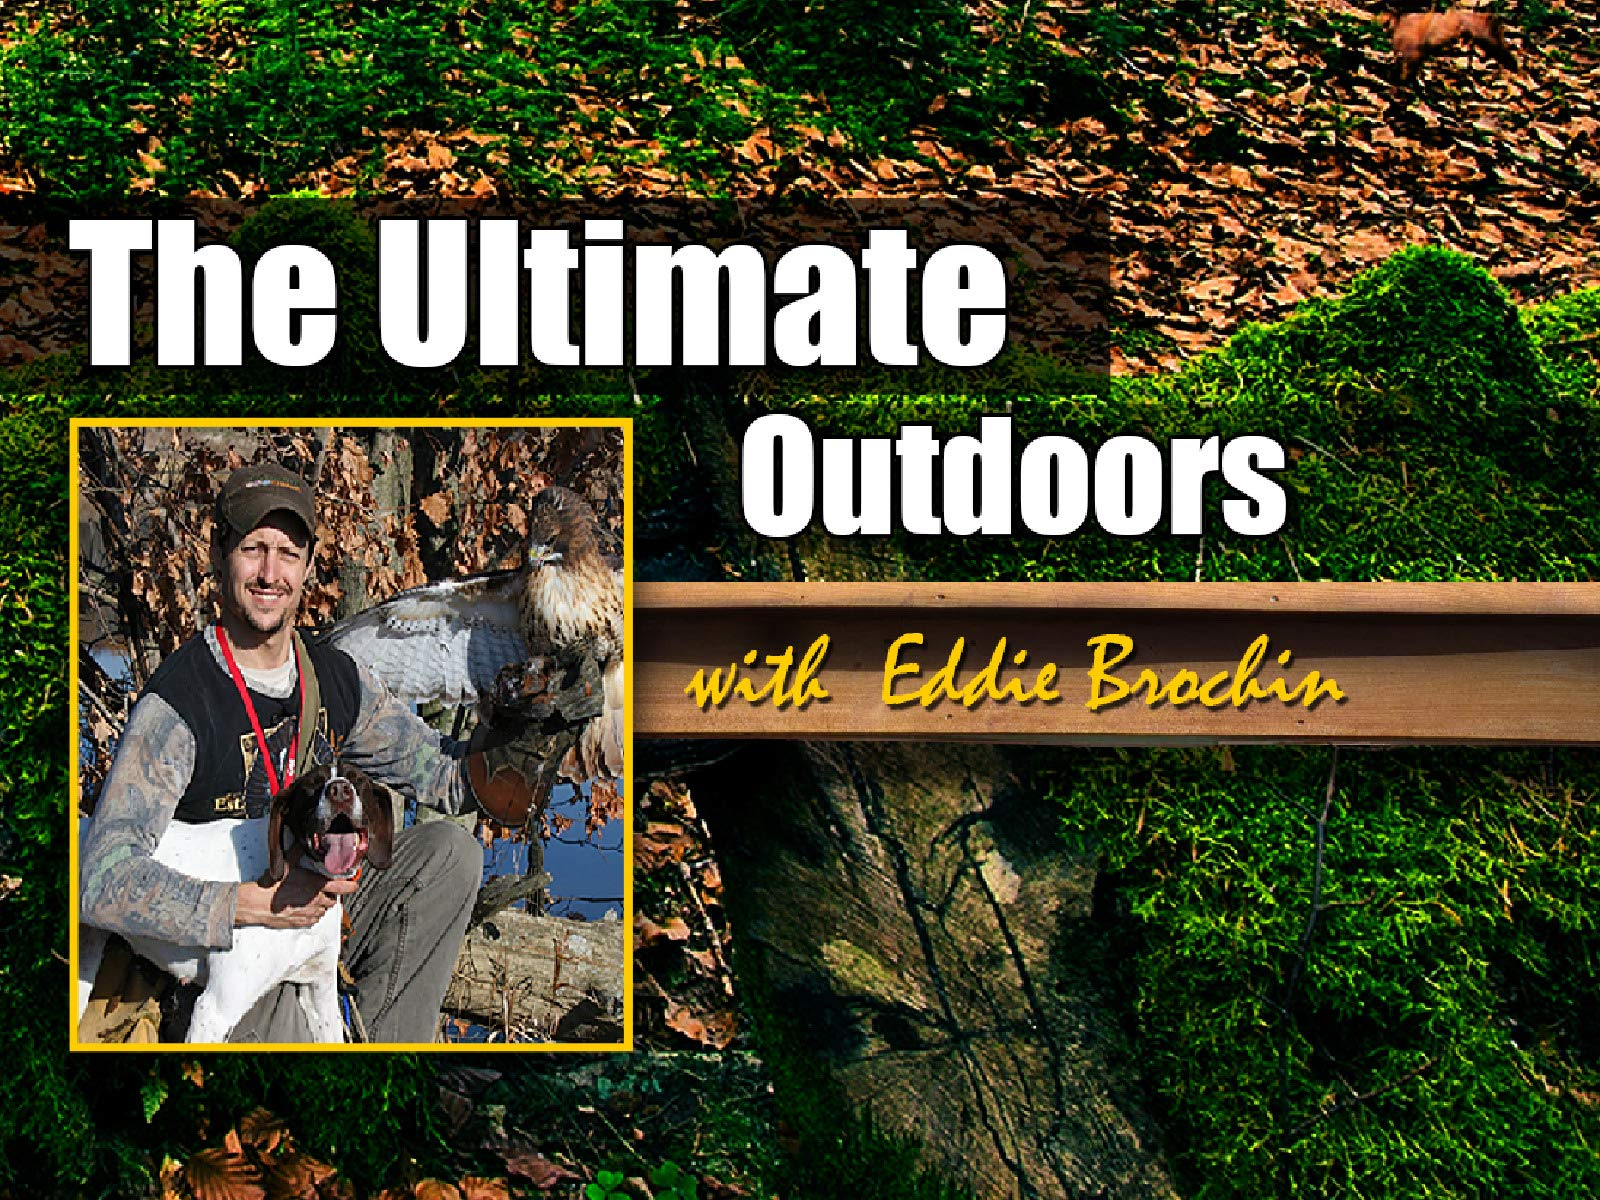 Ultimate Outdoors with Eddie Brochin - Season 1